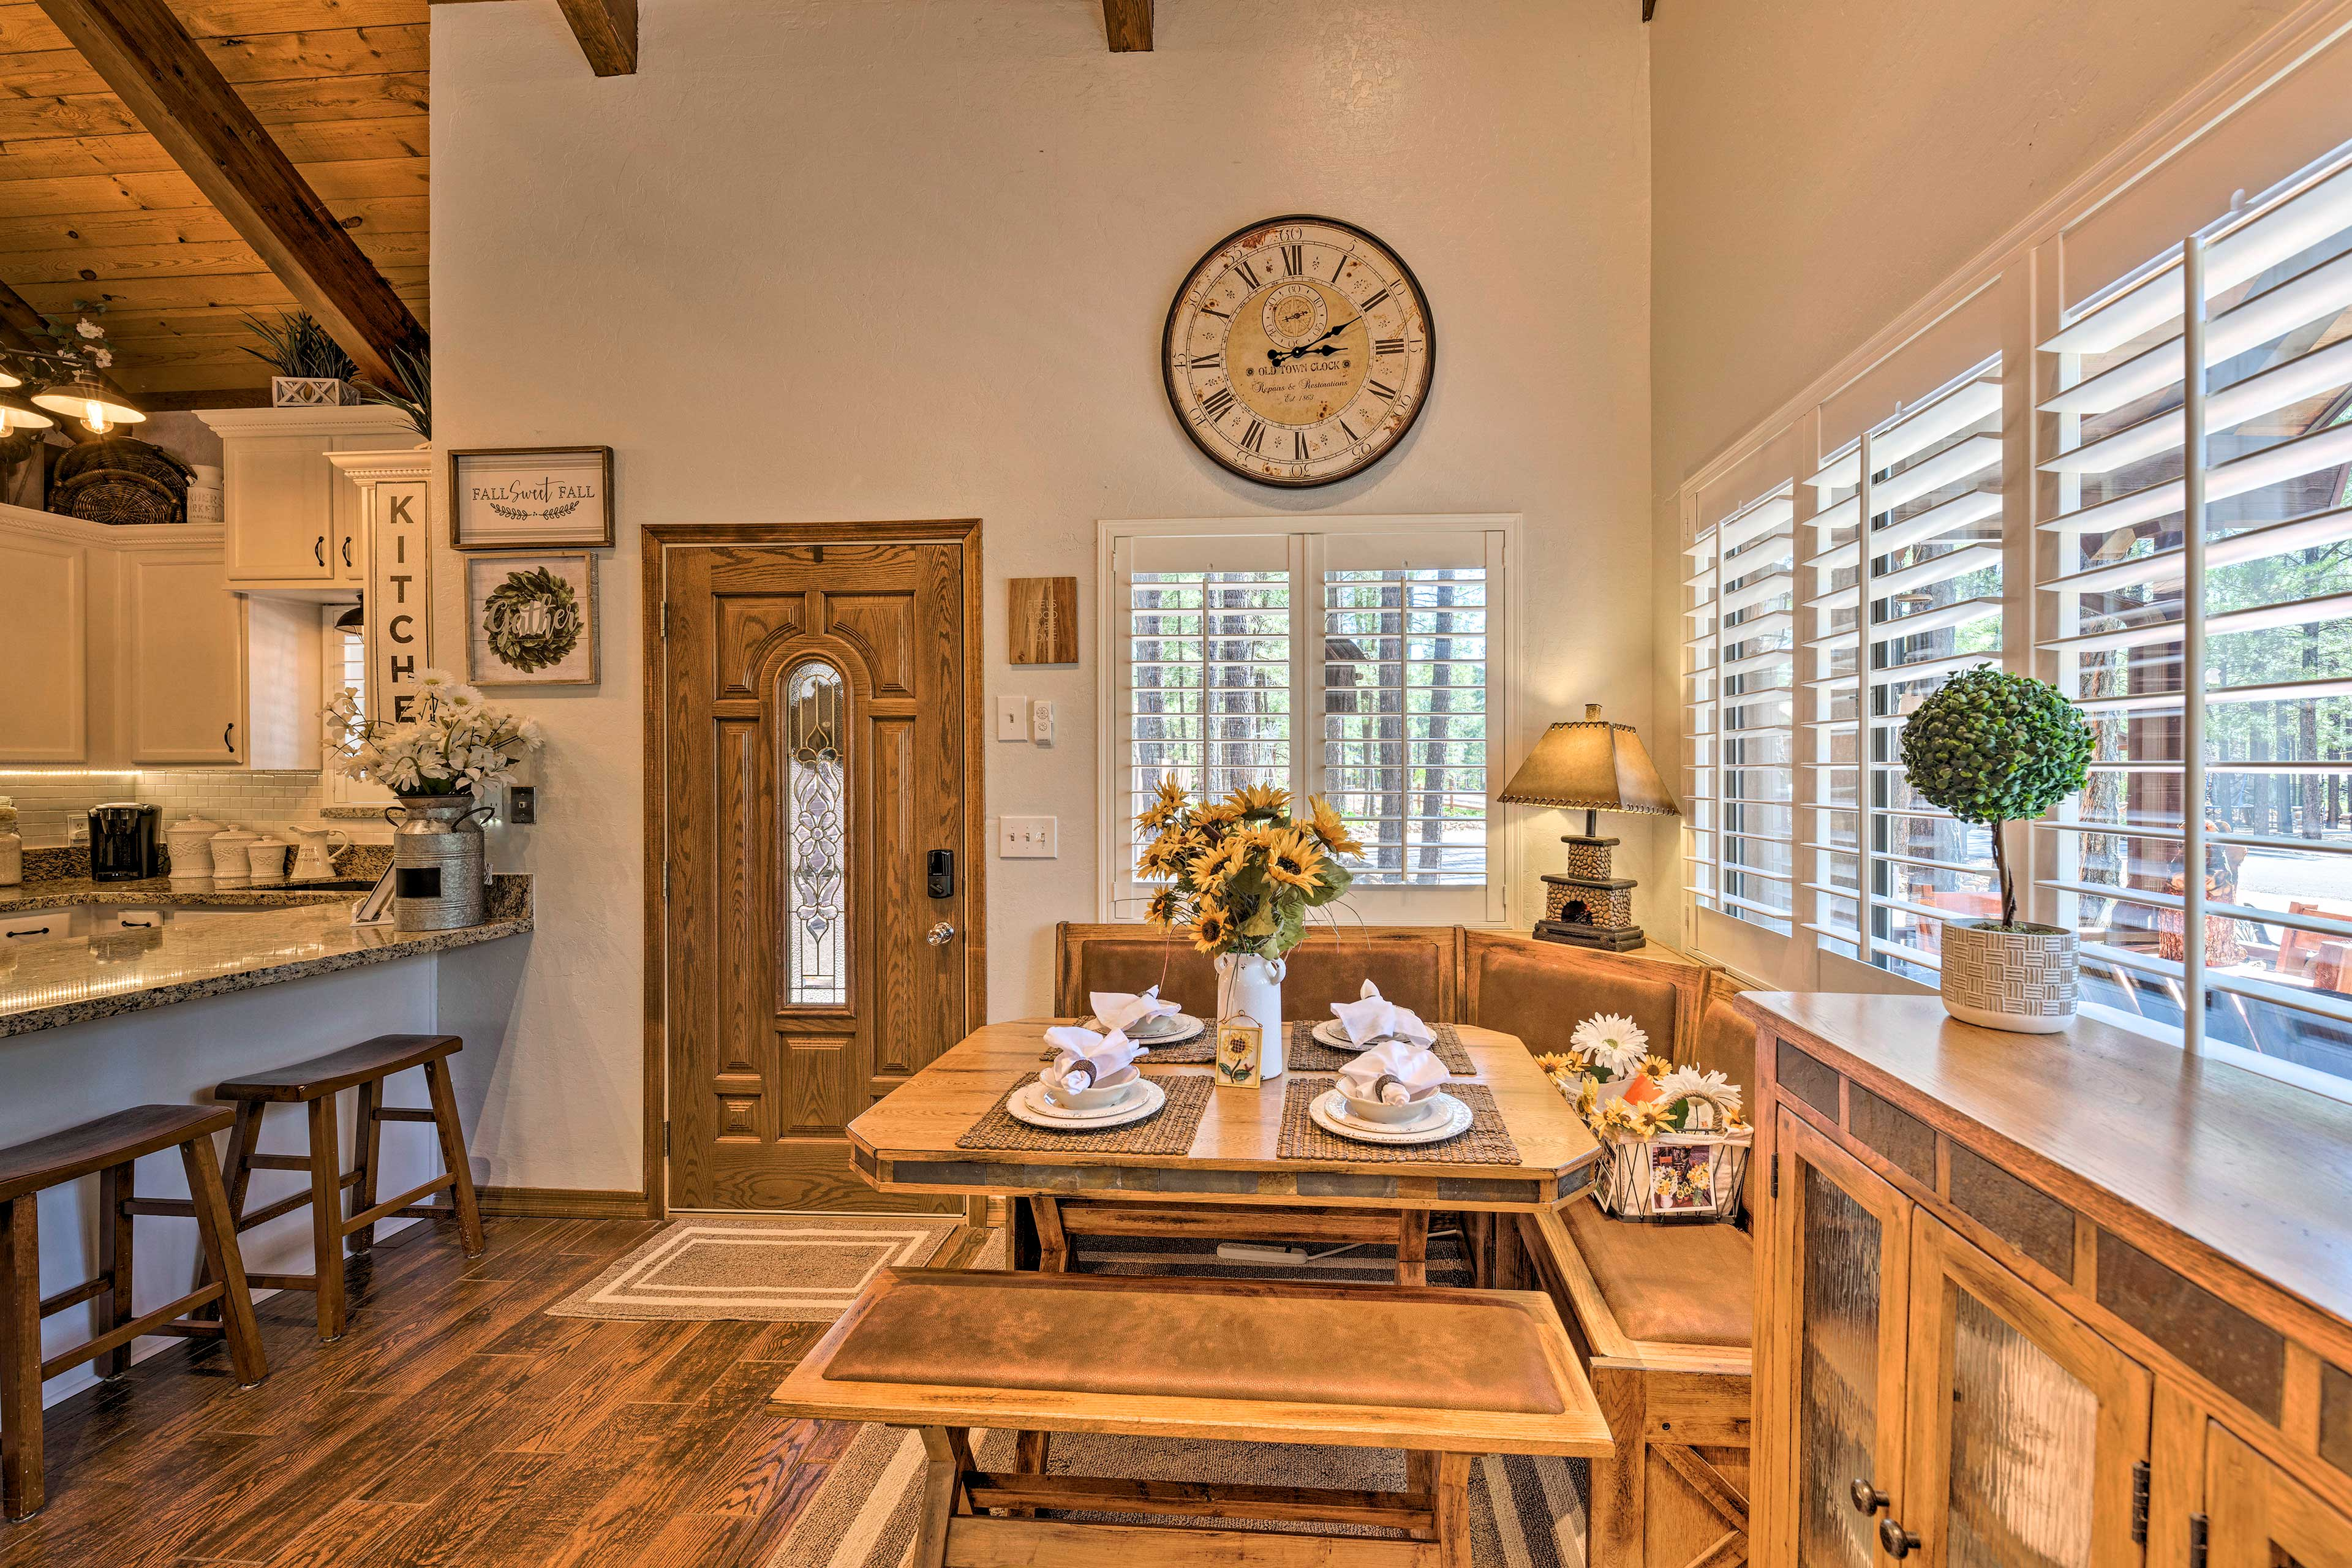 Sit down to breakfast in this charming nook.